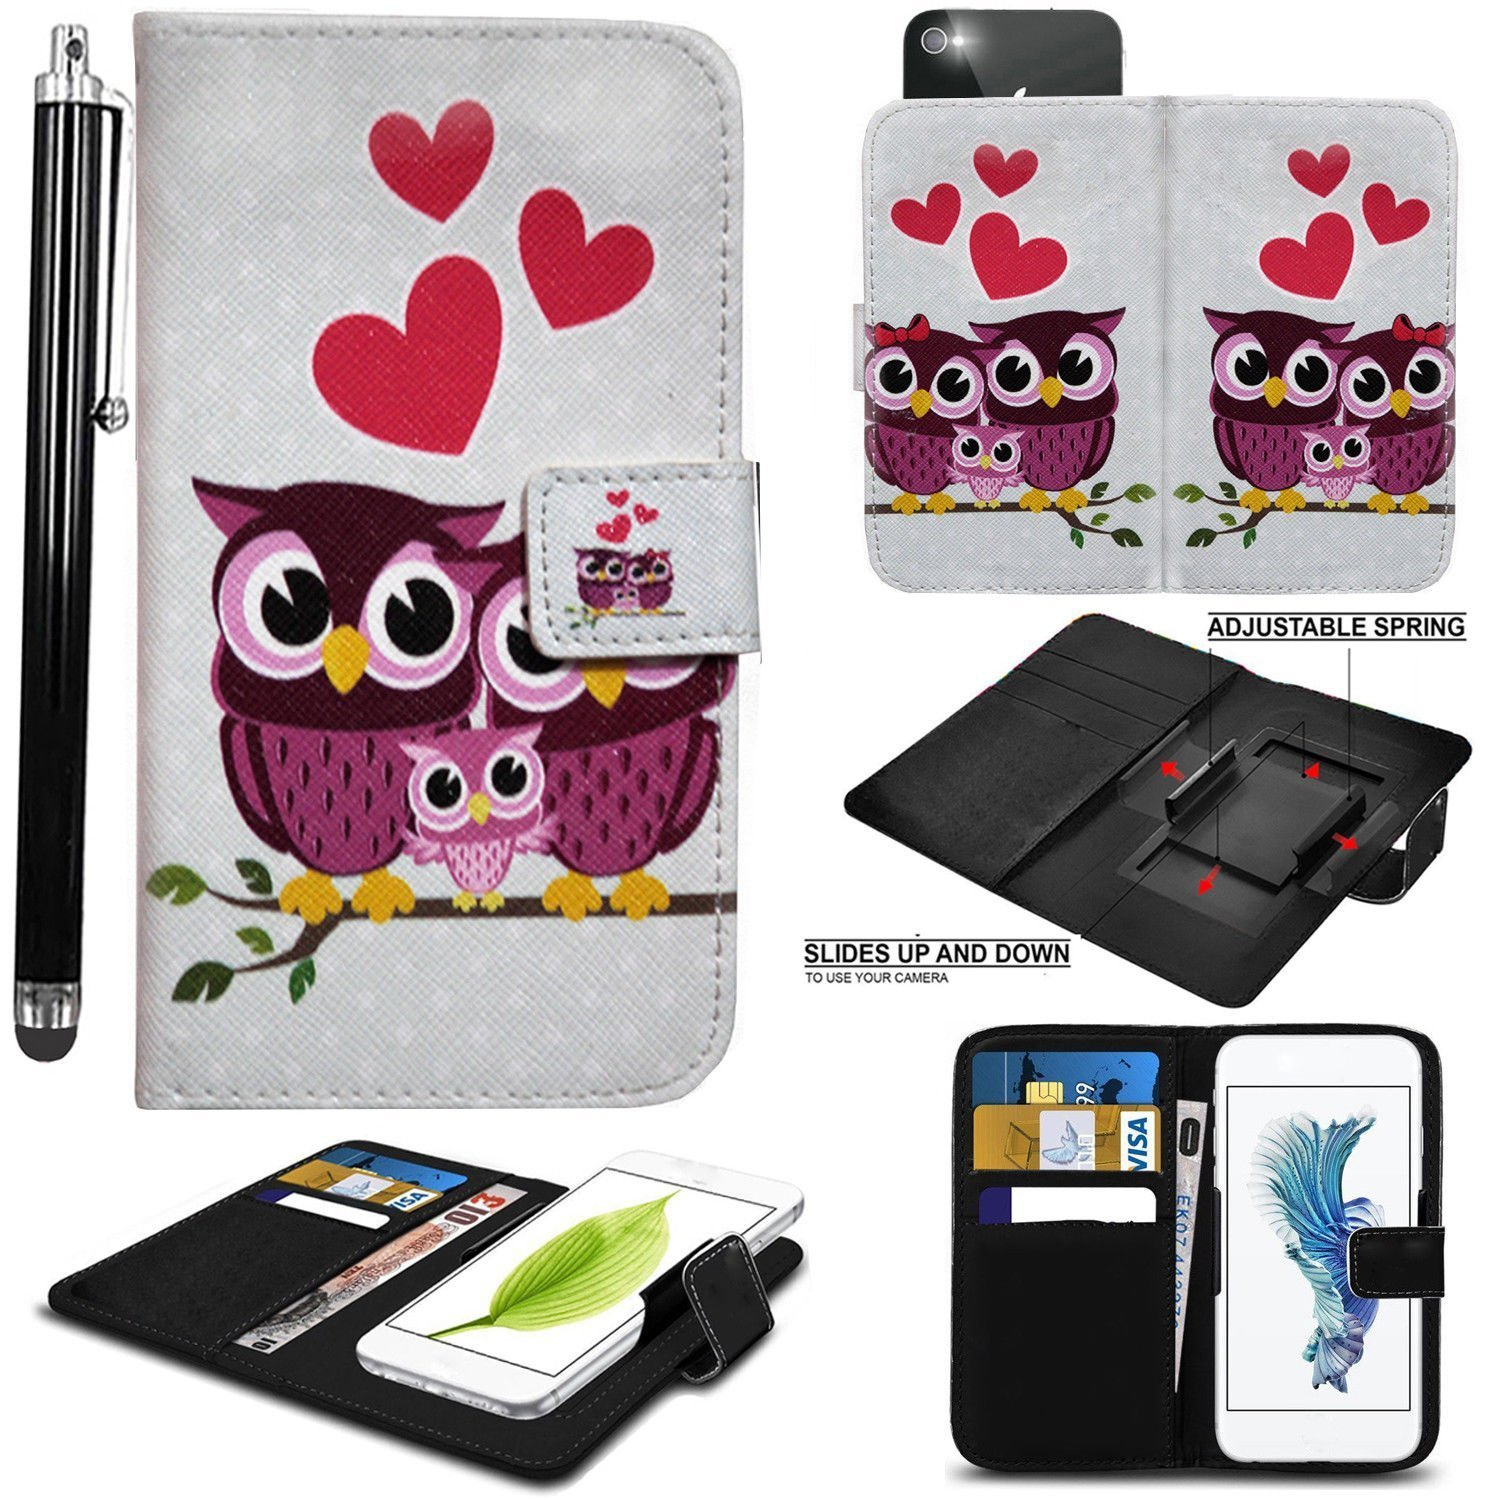 newest e9aab 25a9b PRINTED DESIGN Mobile Stuff case for Argos Alba 5 Inch case cover pouch  Thin Faux Leather Hold it Spring Clamp Clip on Adjustable Book + Free  Stylus ...